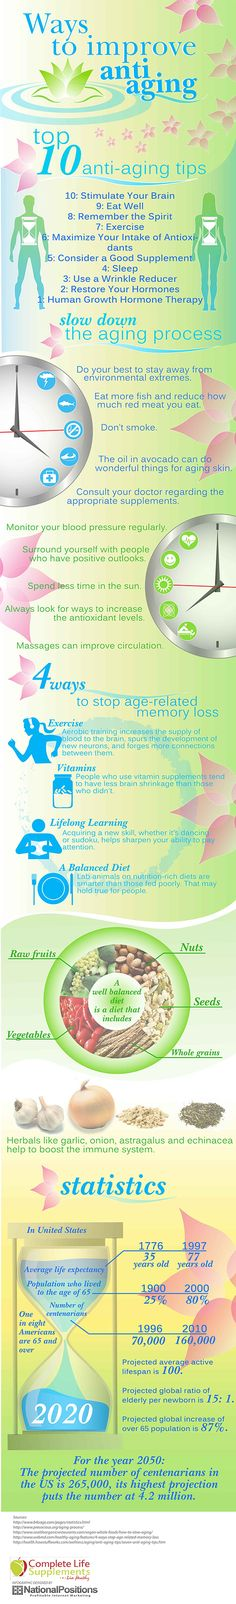 Ways To improve anti aging diy age easy diy aging remedies home remedies health remedies anti aging antioxidants Health Tips, Health And Wellness, Health And Beauty, Health Fitness, Natural Cures, Natural Health, Health Remedies, Home Remedies, Anti Aging Tips